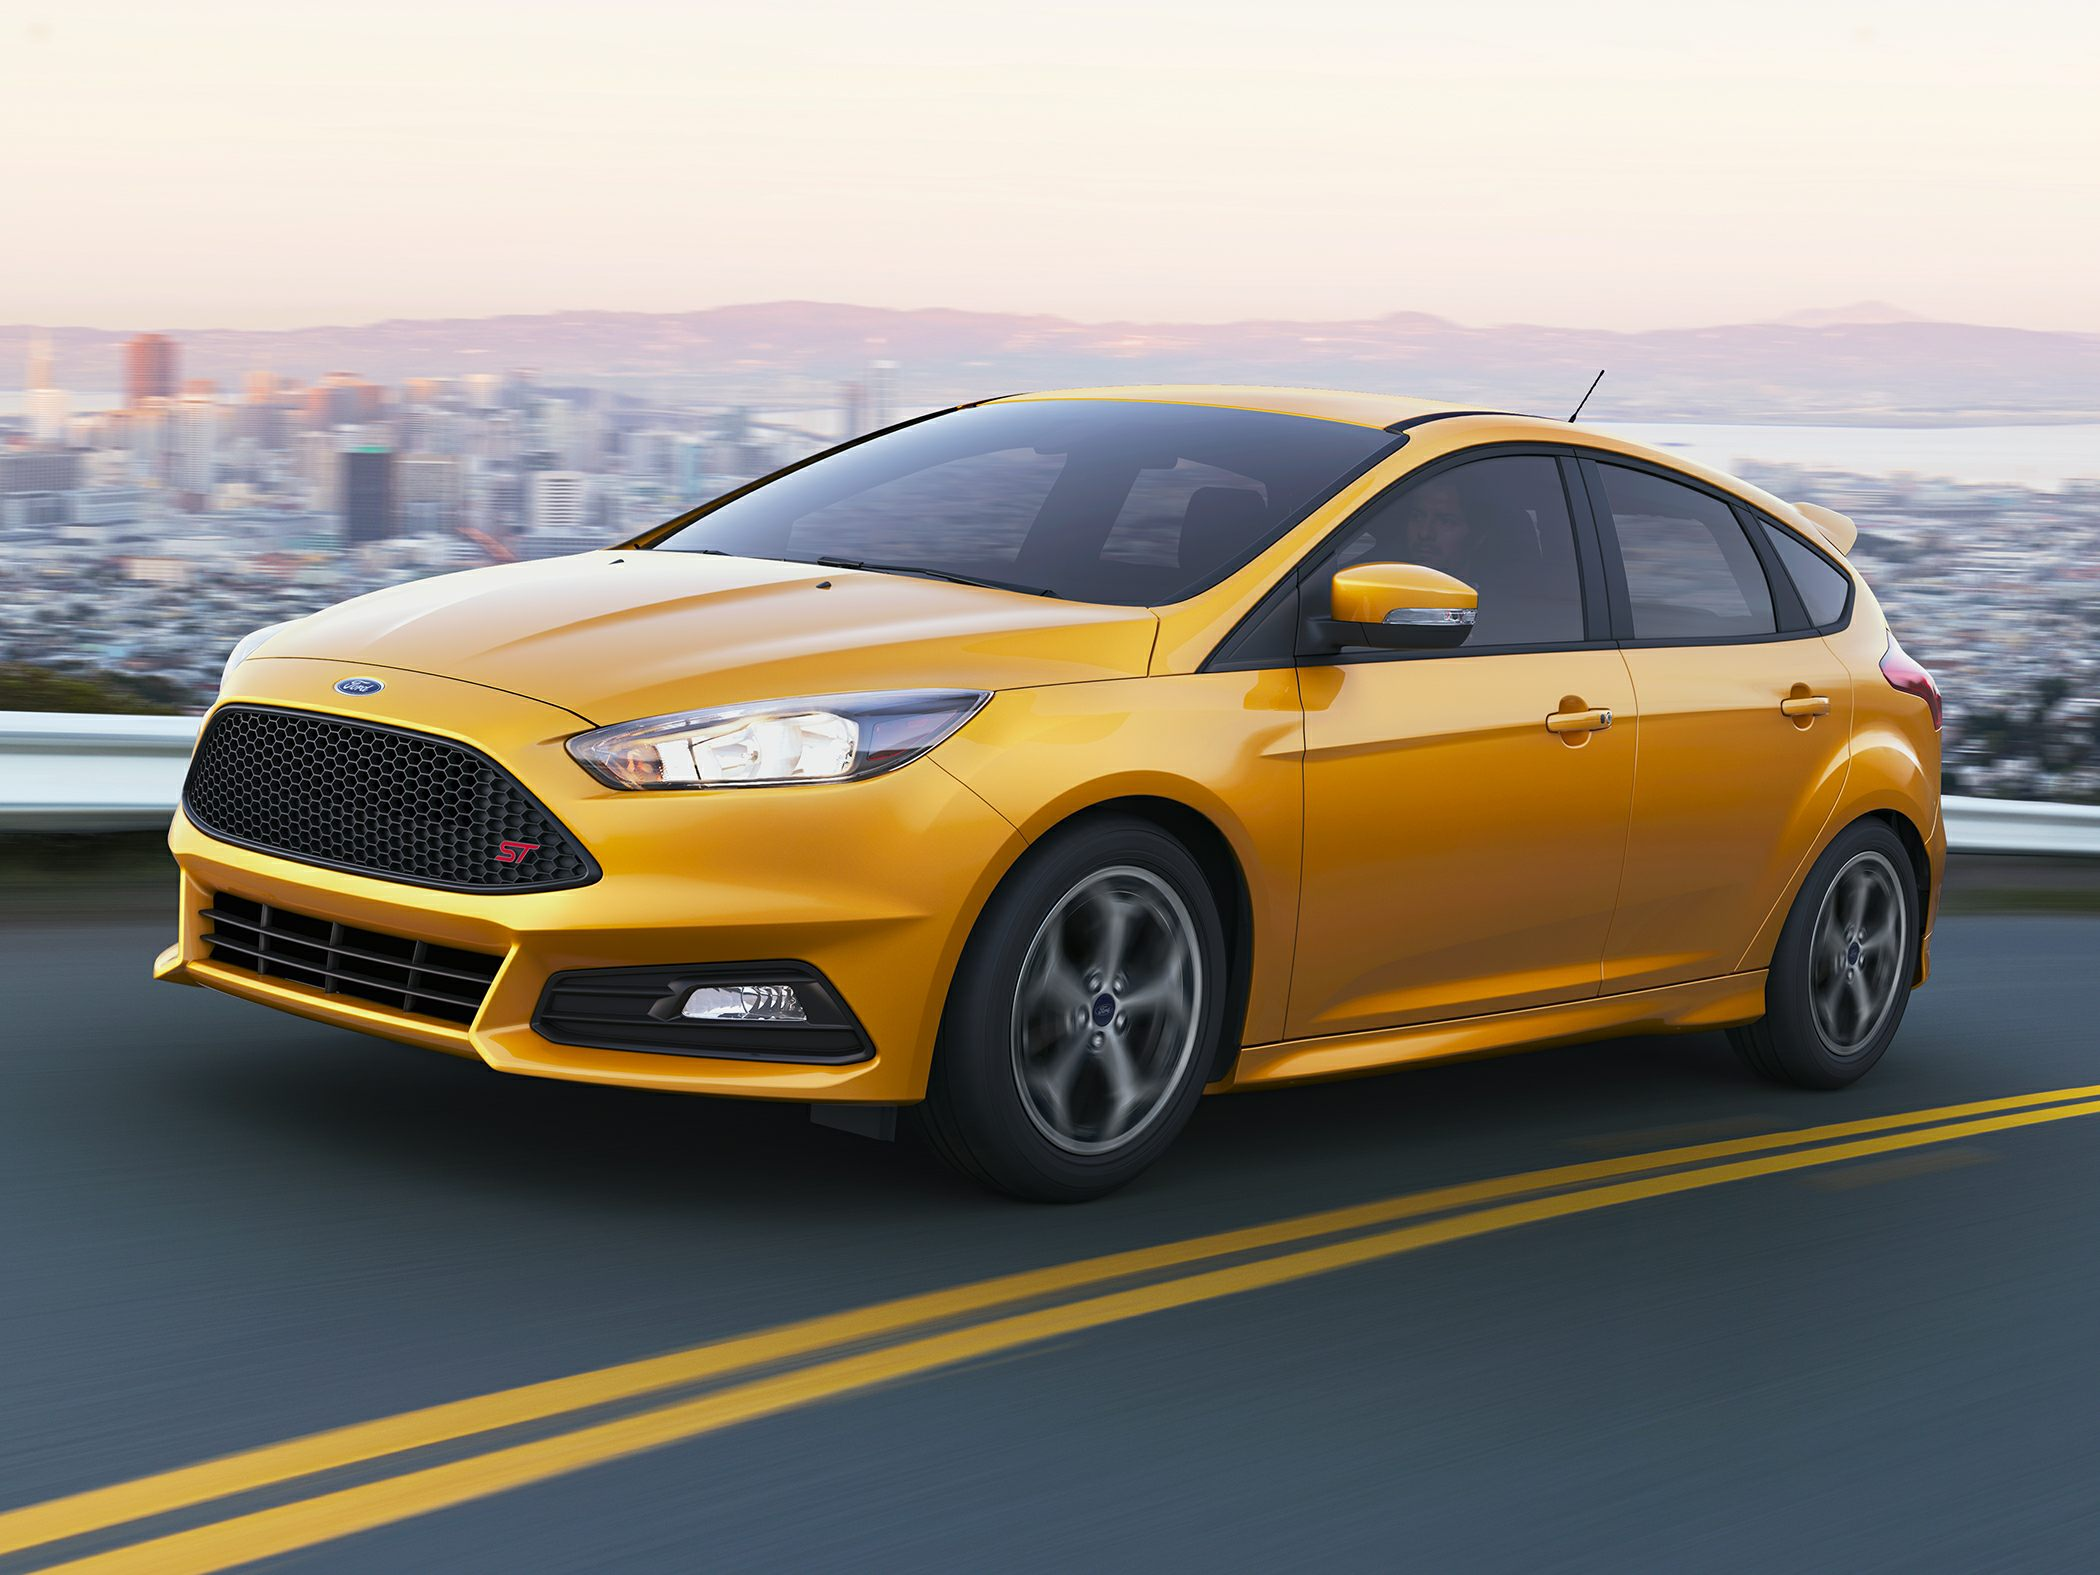 2017 ford focus st deals prices incentives leases overview carsdirect. Black Bedroom Furniture Sets. Home Design Ideas